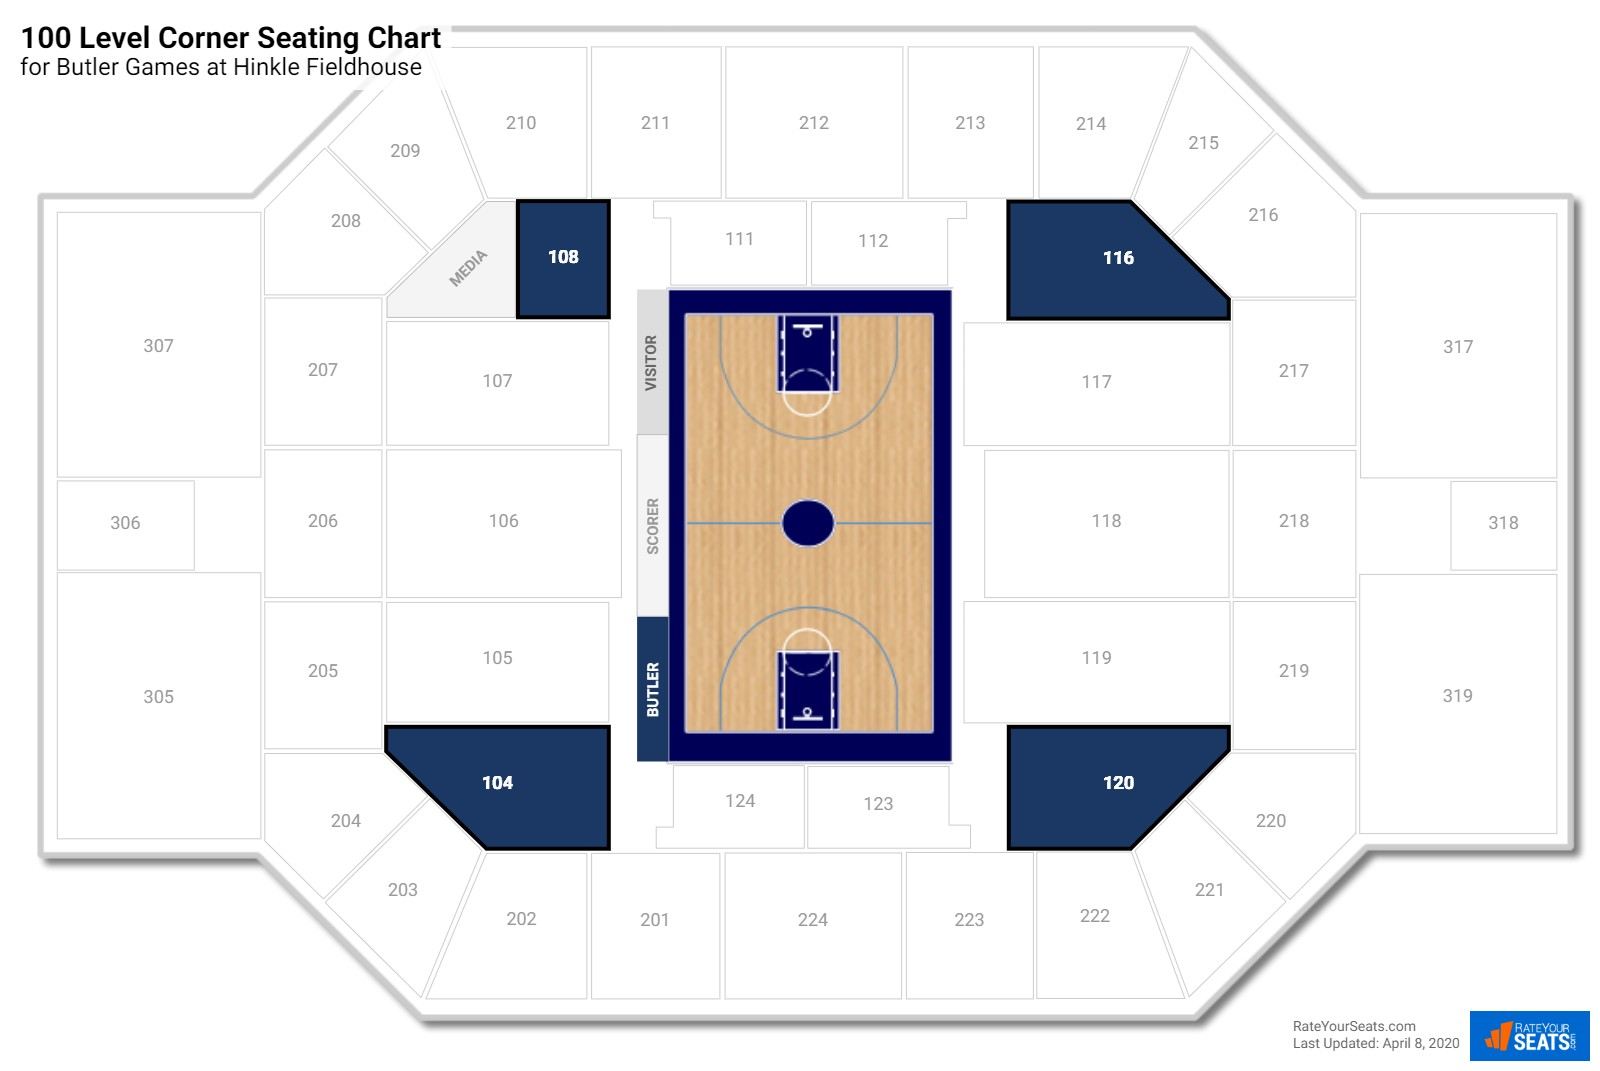 Hinkle Fieldhouse Lower Corner seating chart